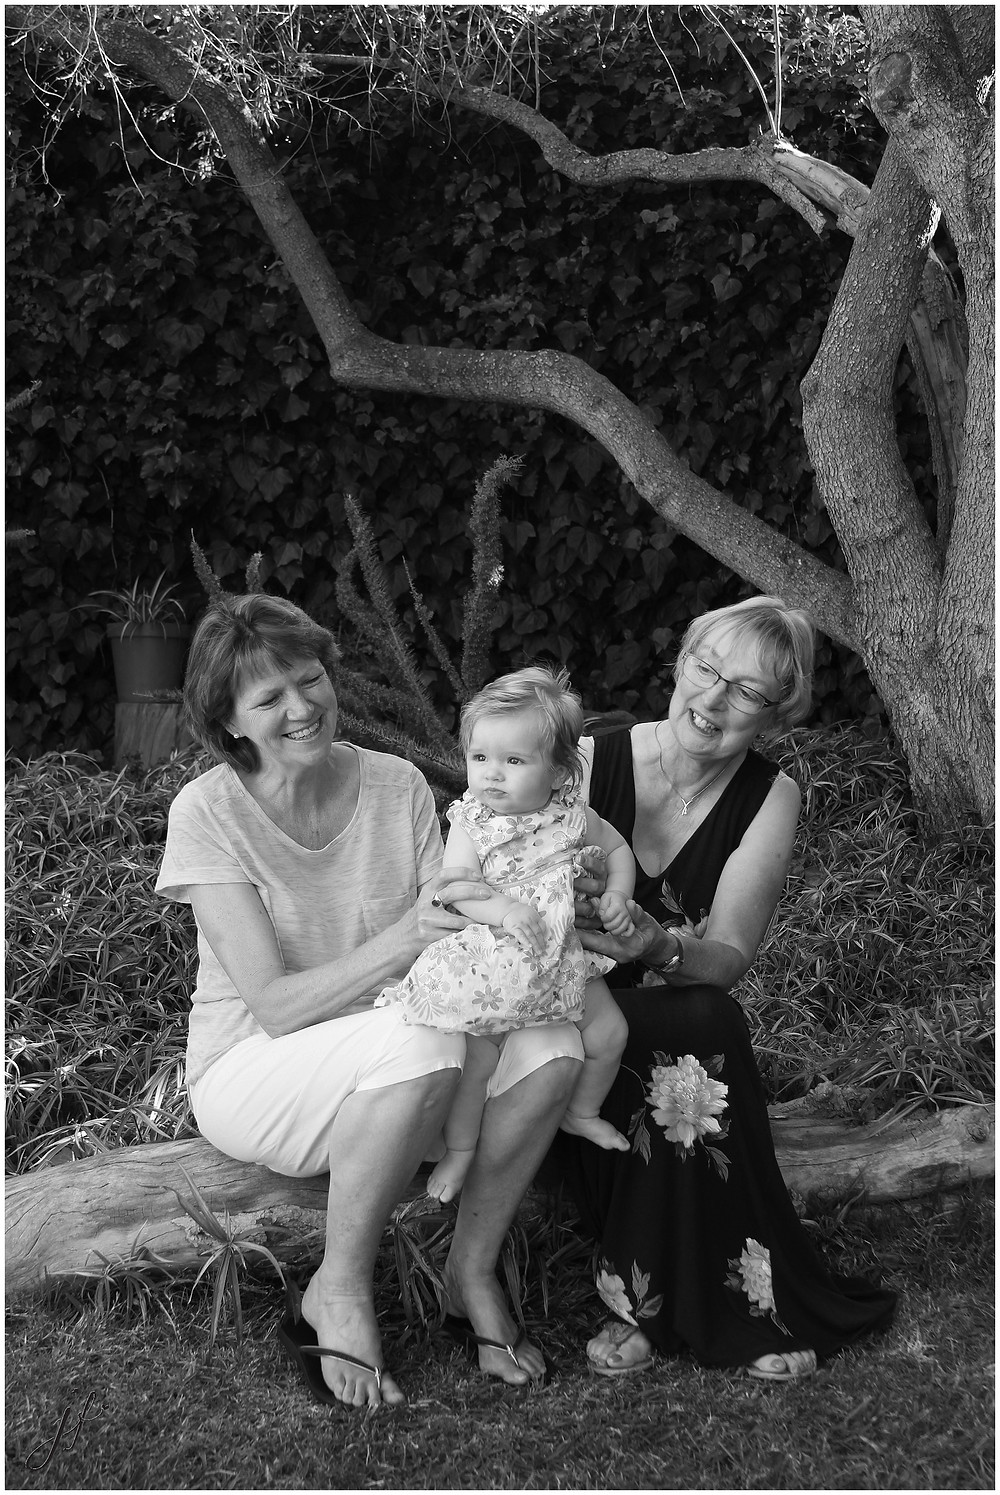 Happy smiles at Family photo shoot in Diepriver by Jaqui Franco Photography from Cape Town